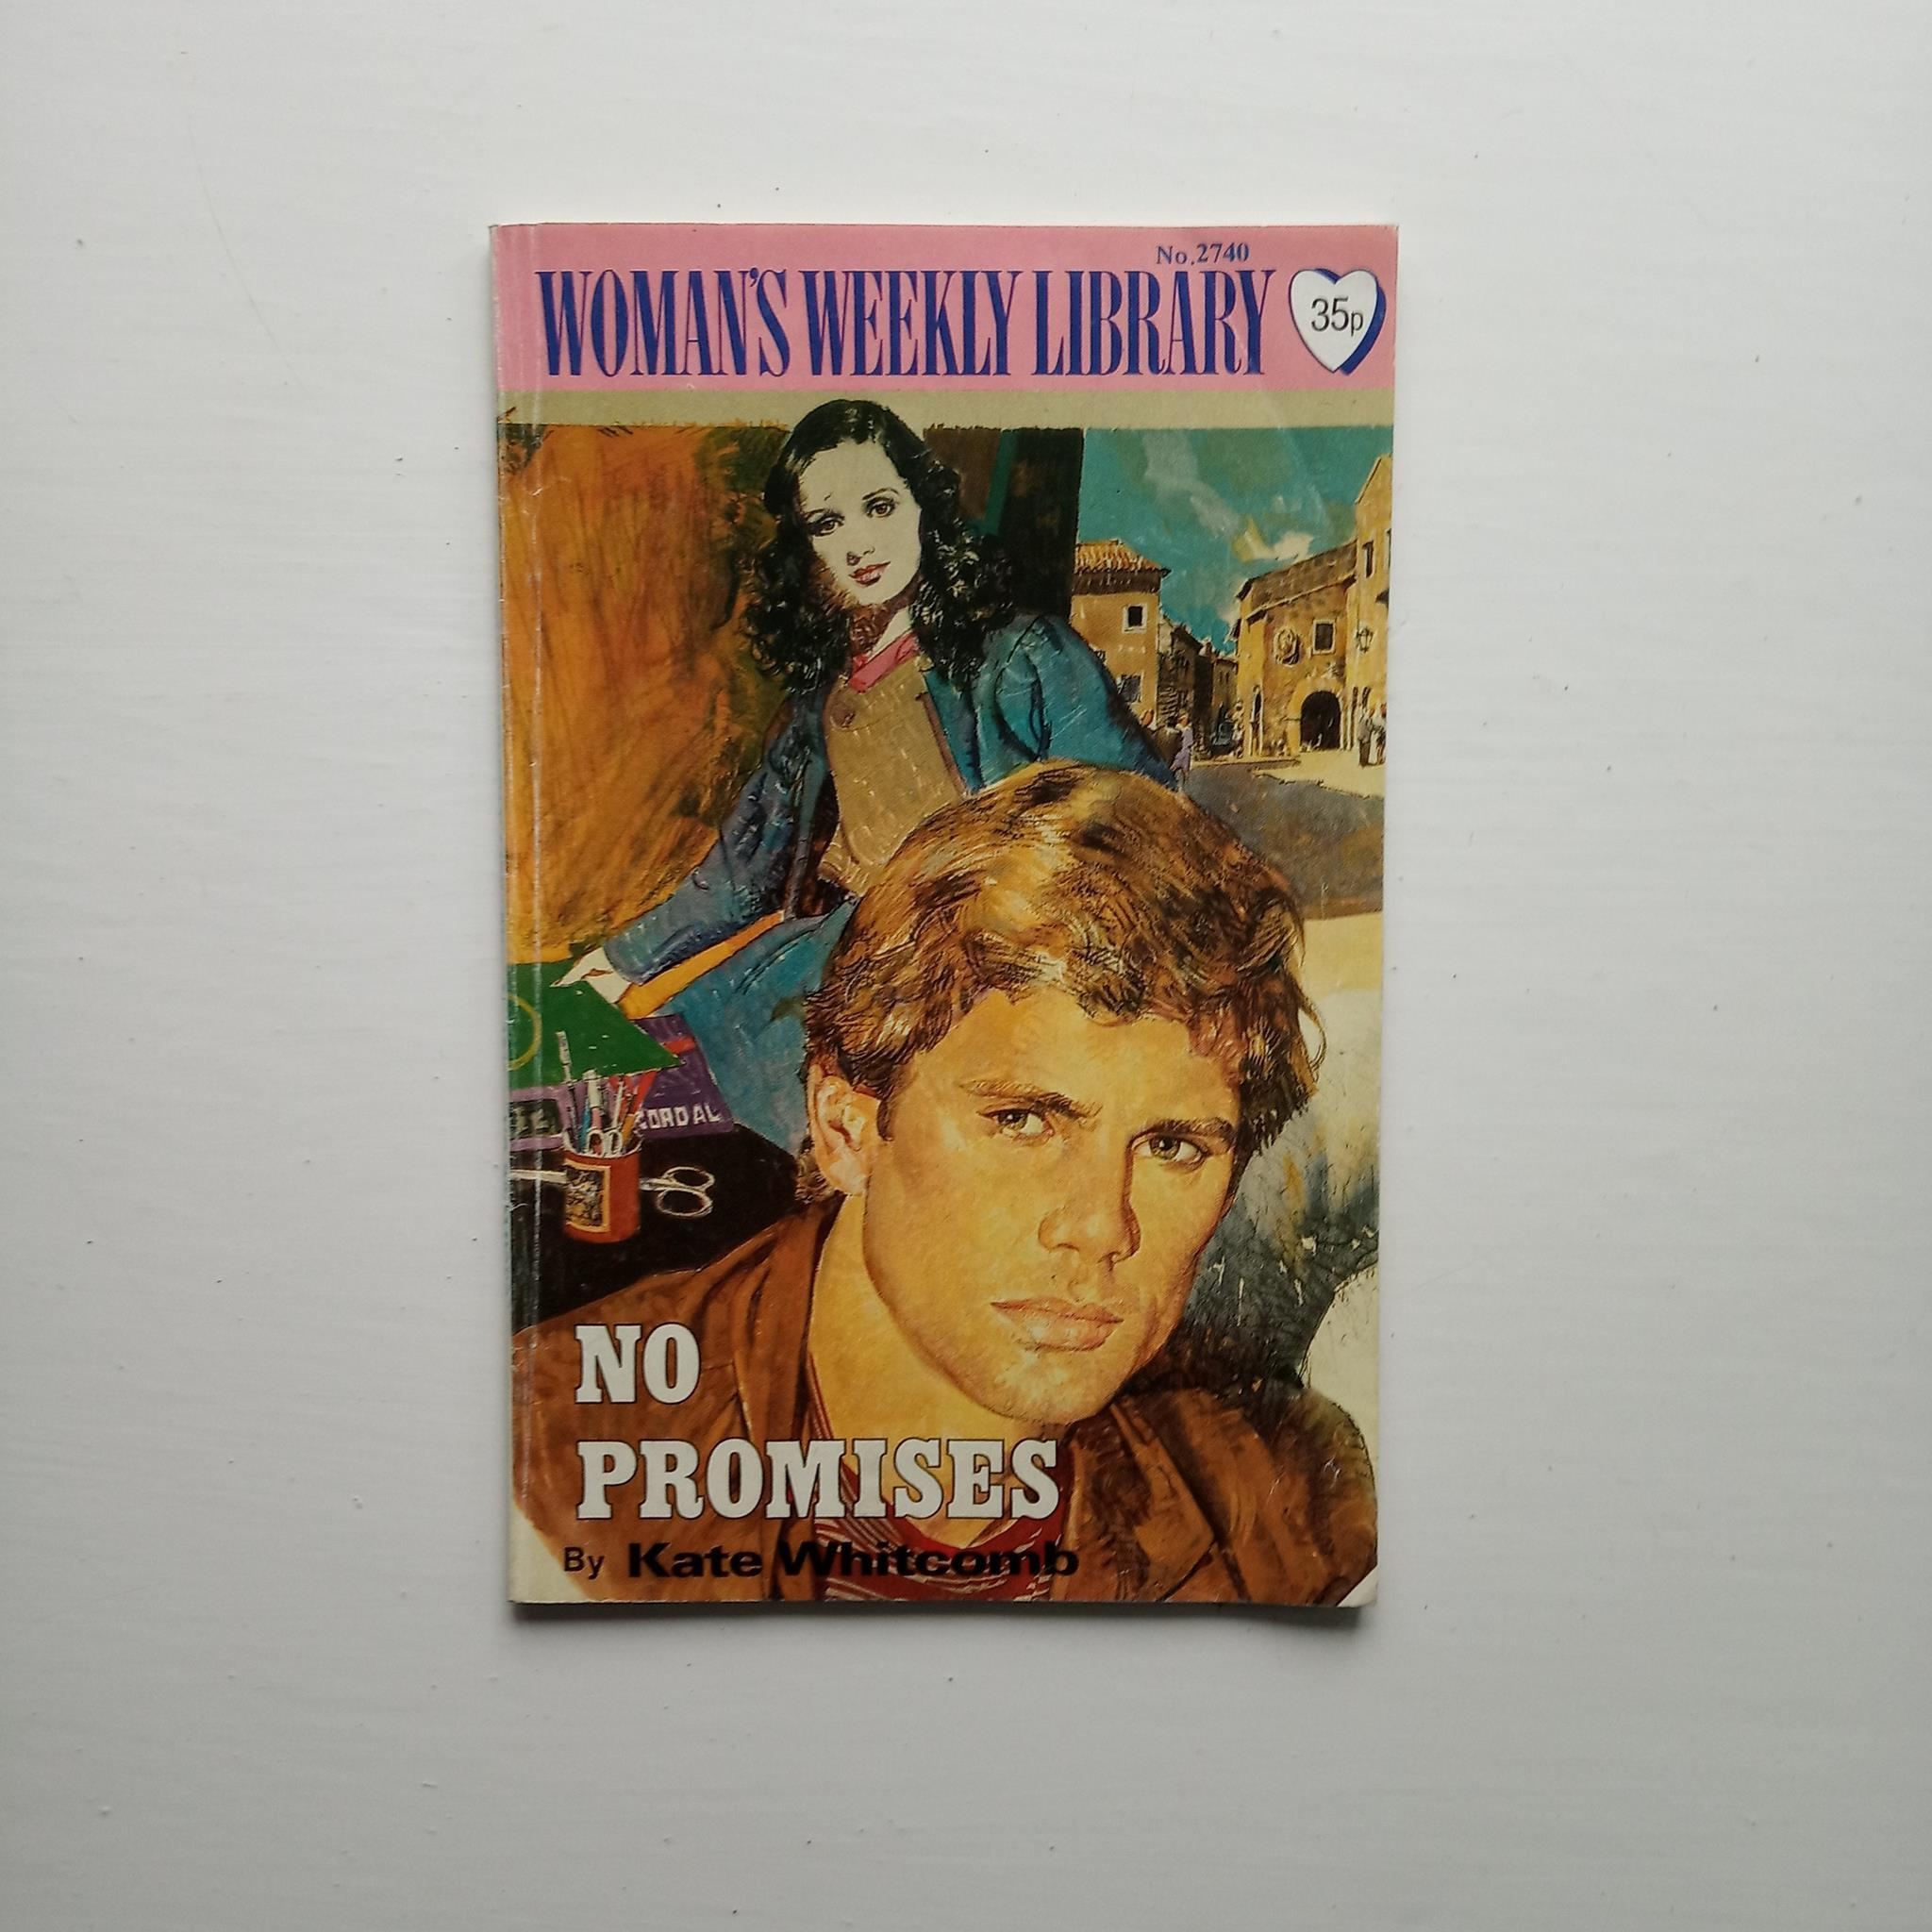 Woman's Weekly Library: No Promises by Kate Whitcomb